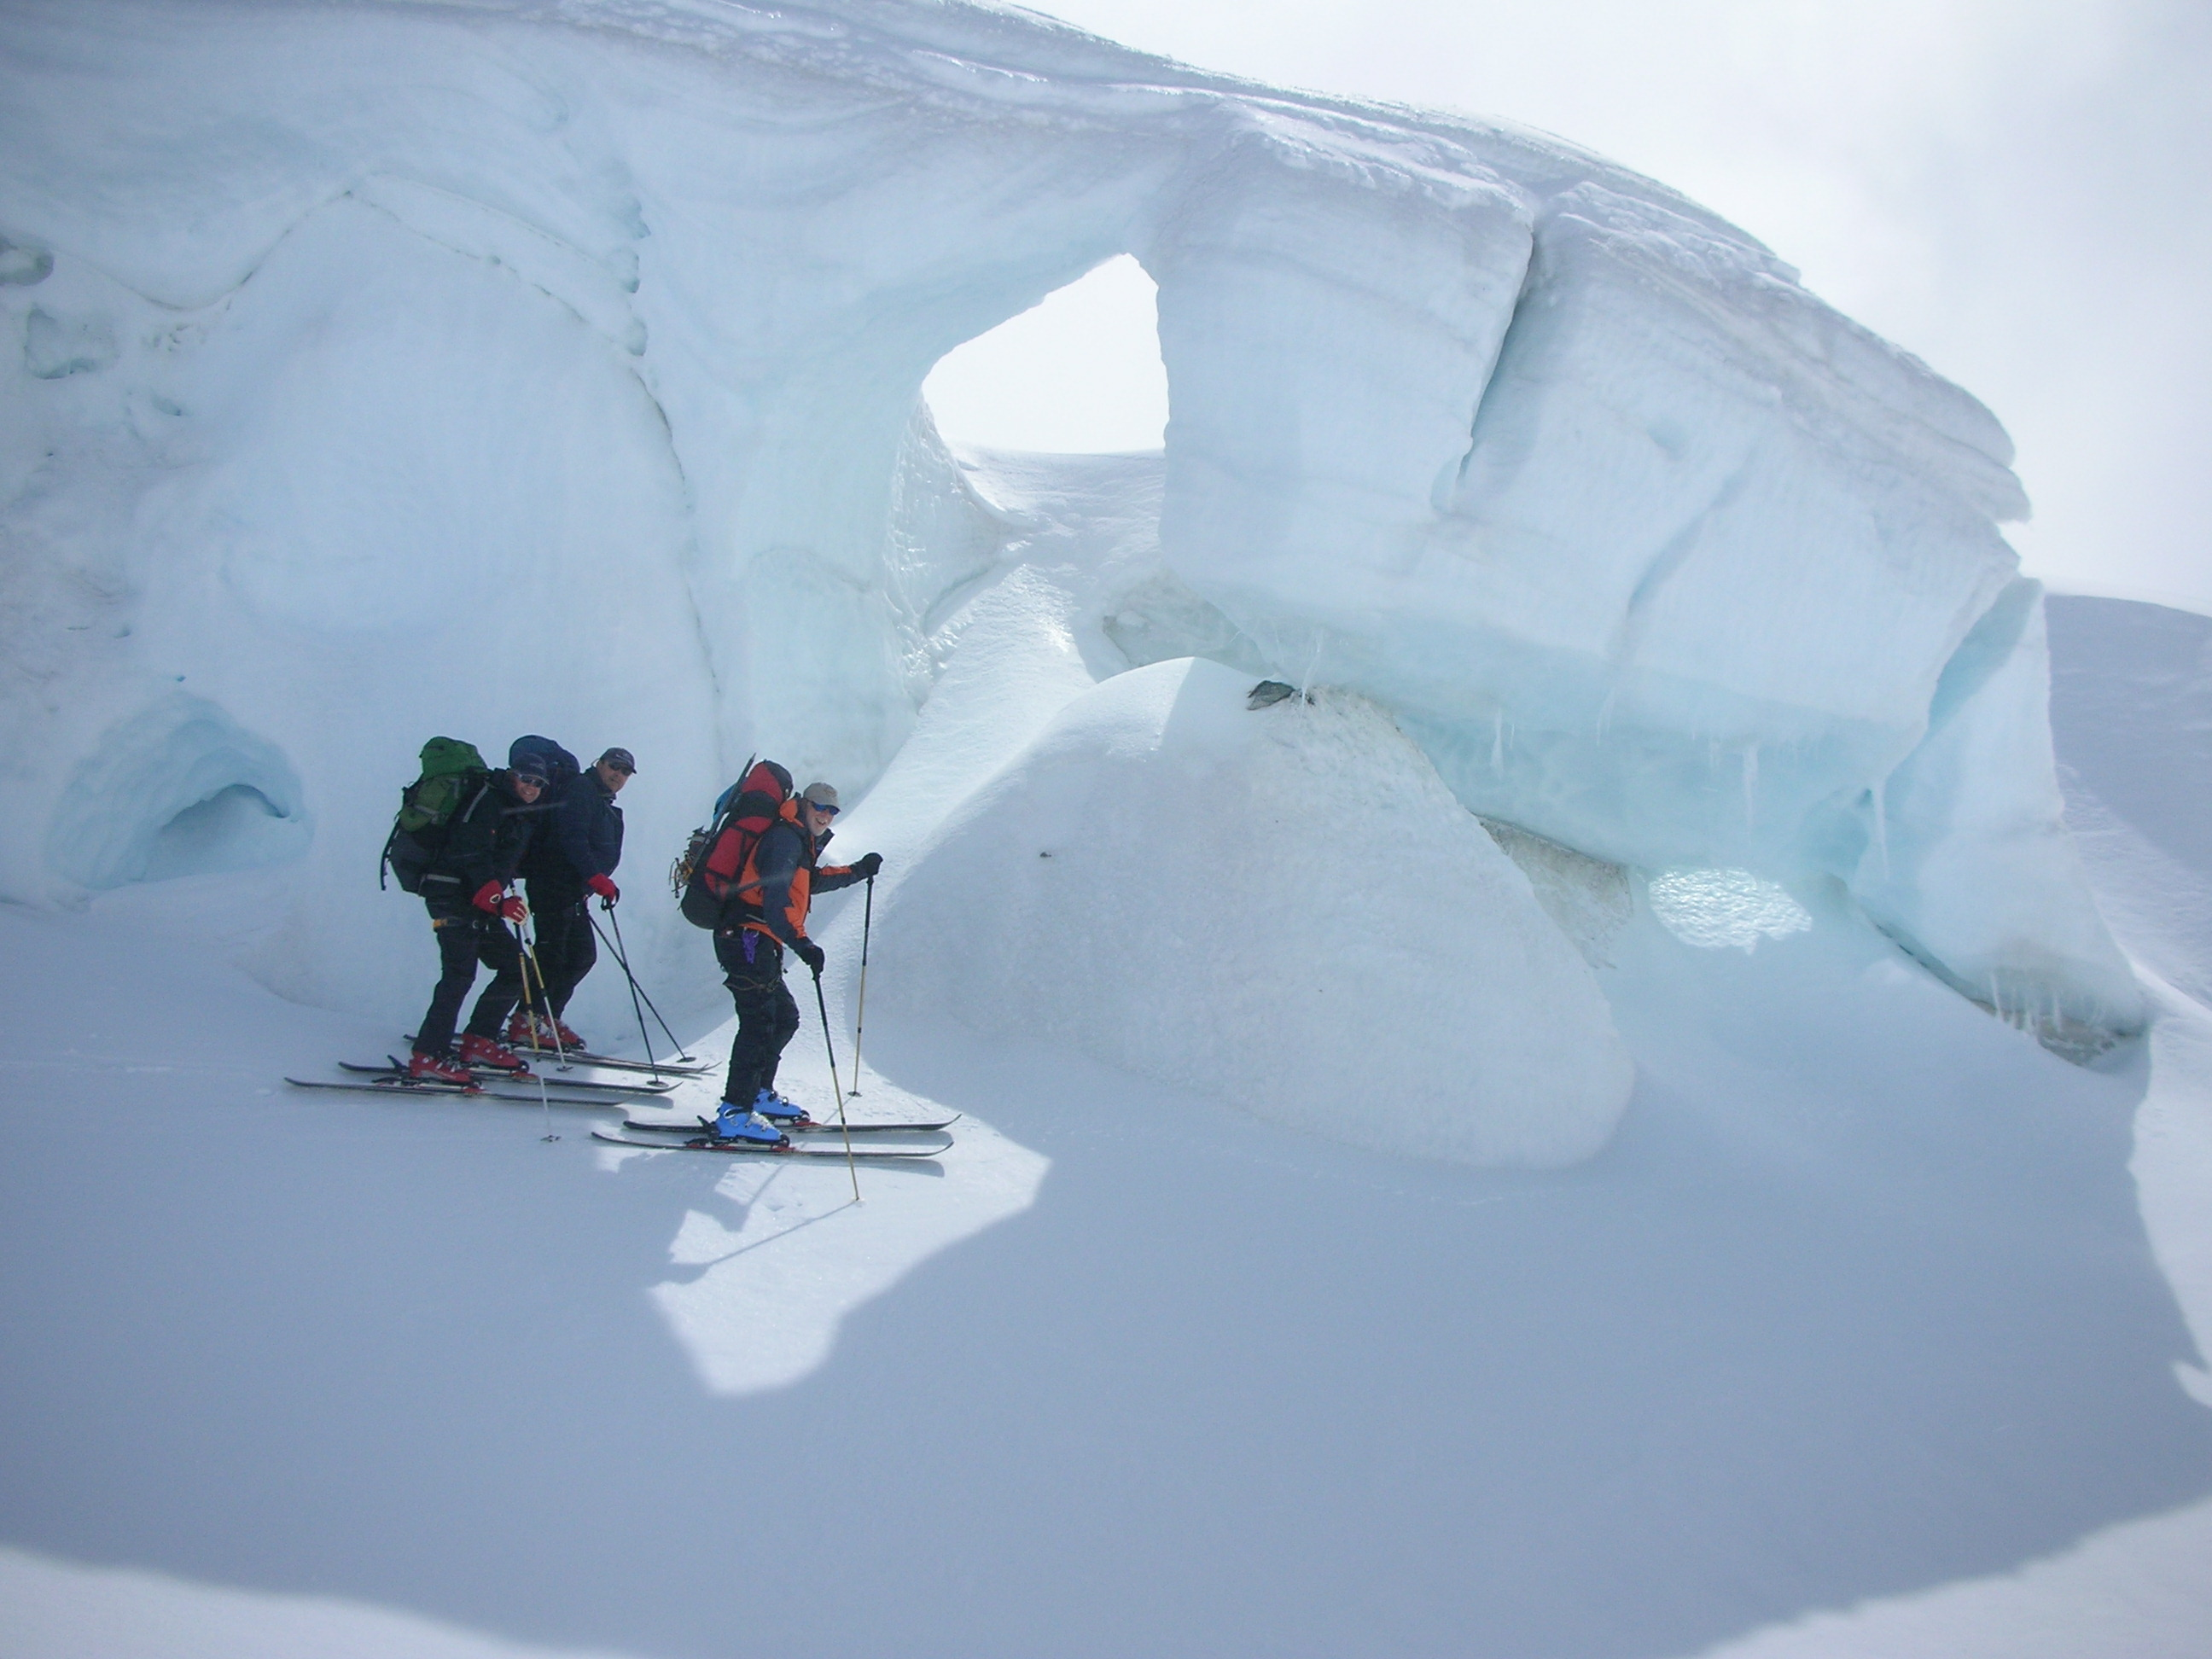 Southern Alps back country ski touring, NZ